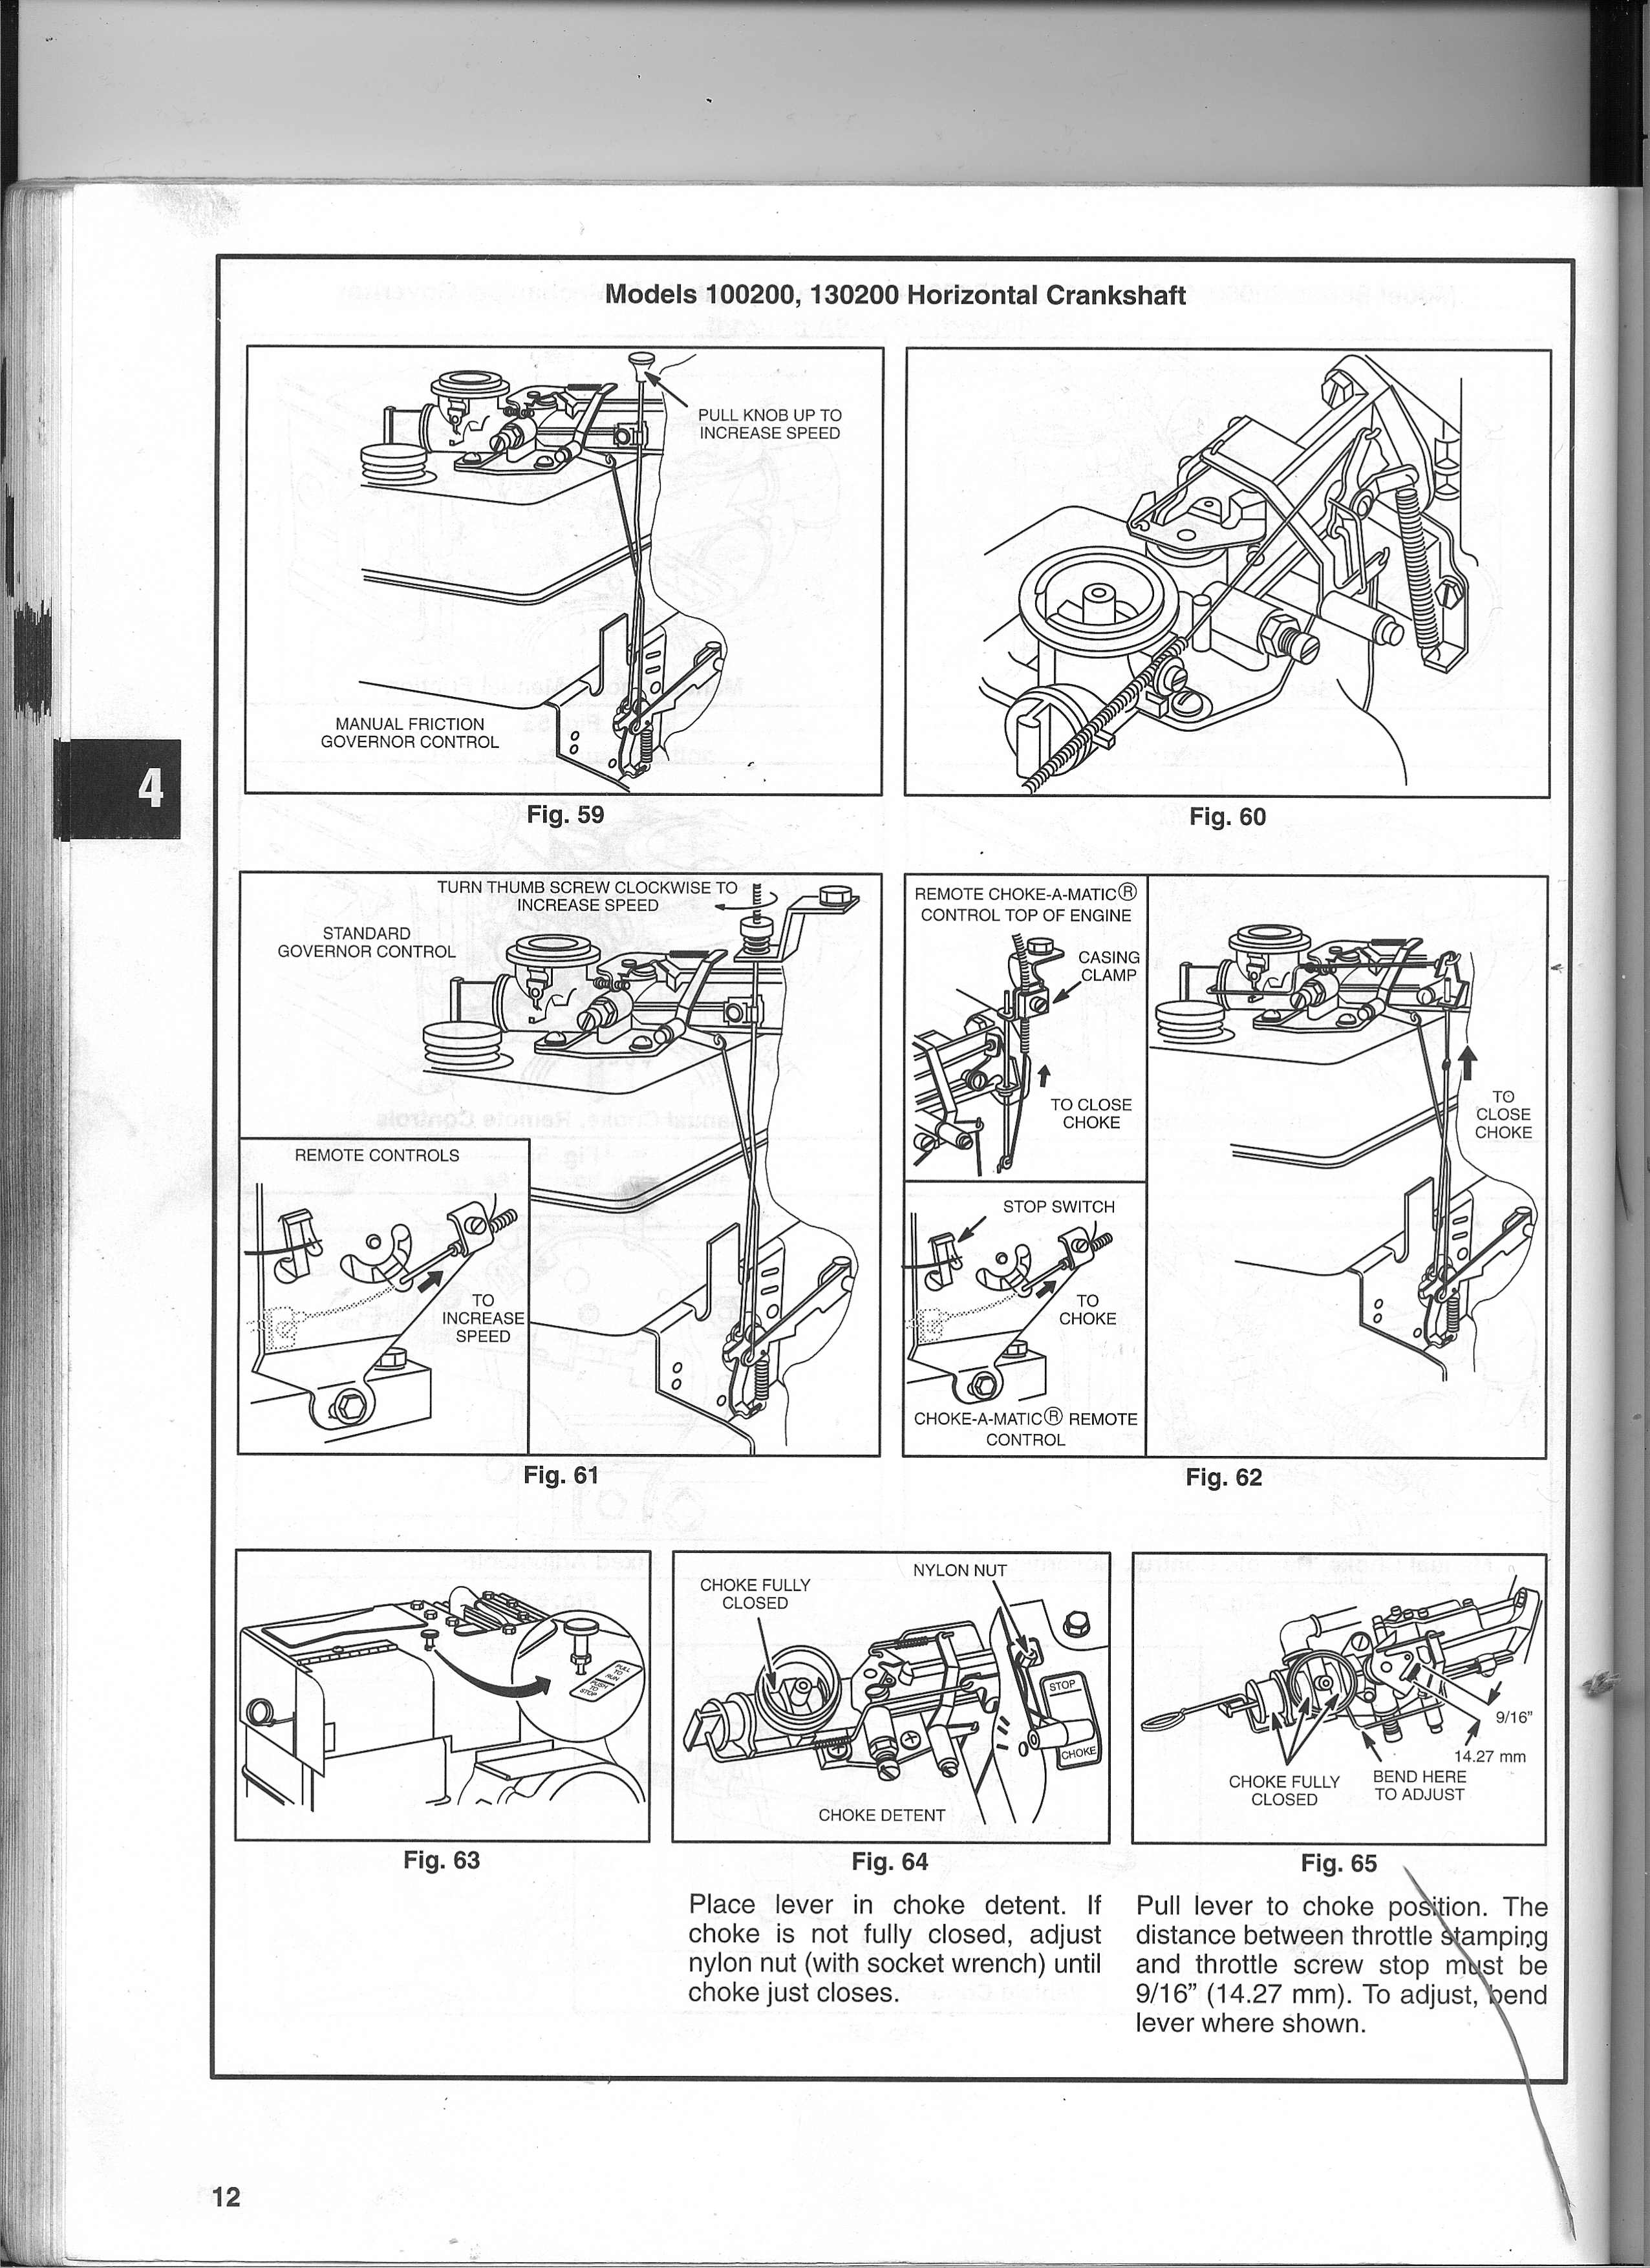 T2976511 Need wire diagram reconnect starter furthermore Kohler Carburetor Service Parts List further Watch further Bcs Tiller Replacement Engine besides 4dft9 Craftsman 5 24 Snow Blower Modelnnn Nn Nnnn Serial. on troy bilt tiller engine parts diagram